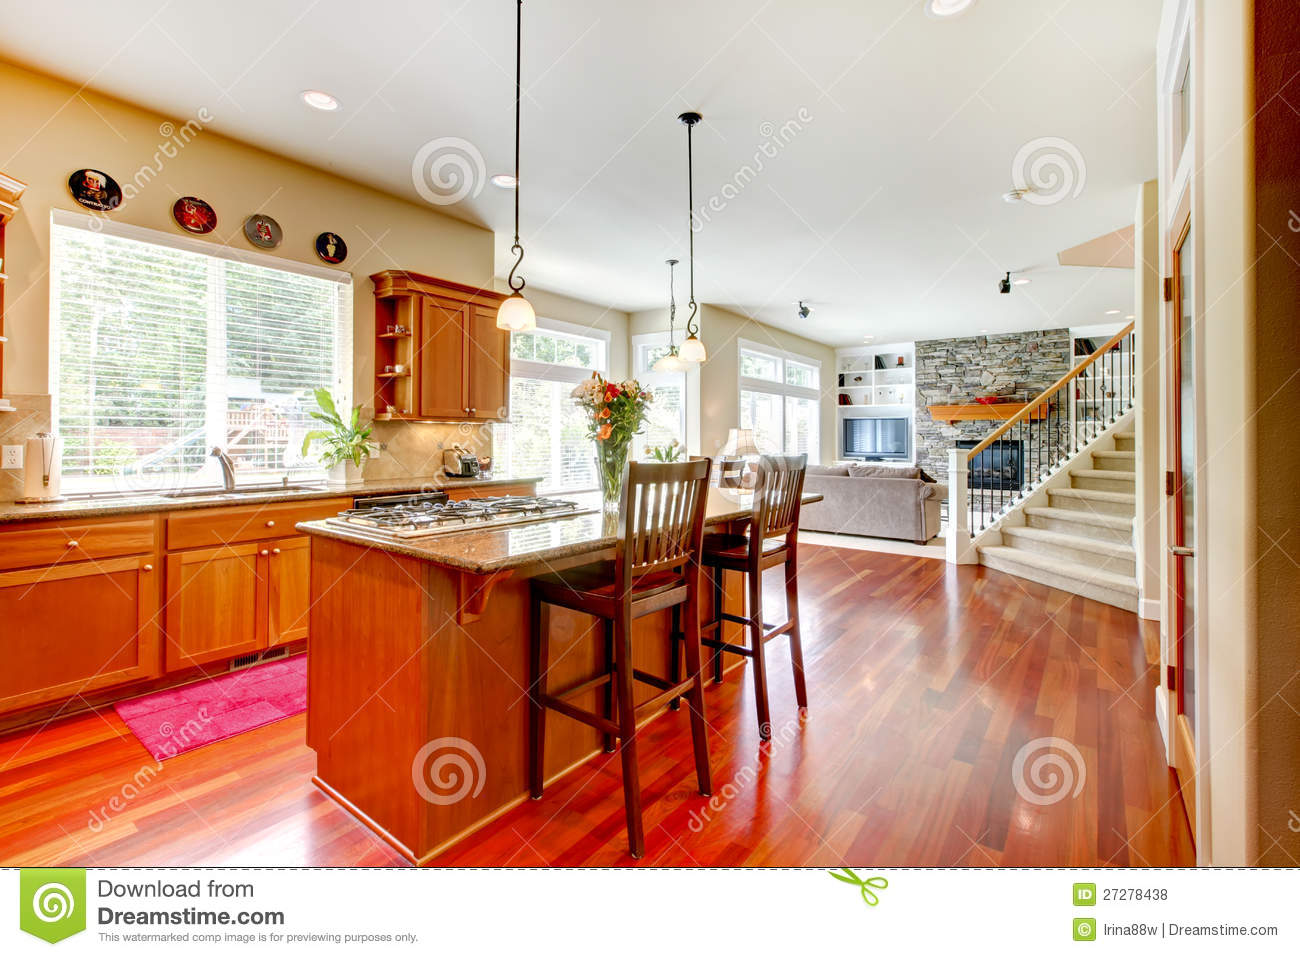 Wood luxury large kitchen living room royalty free stock photos image 27278438 - Luxury kitchen room ...